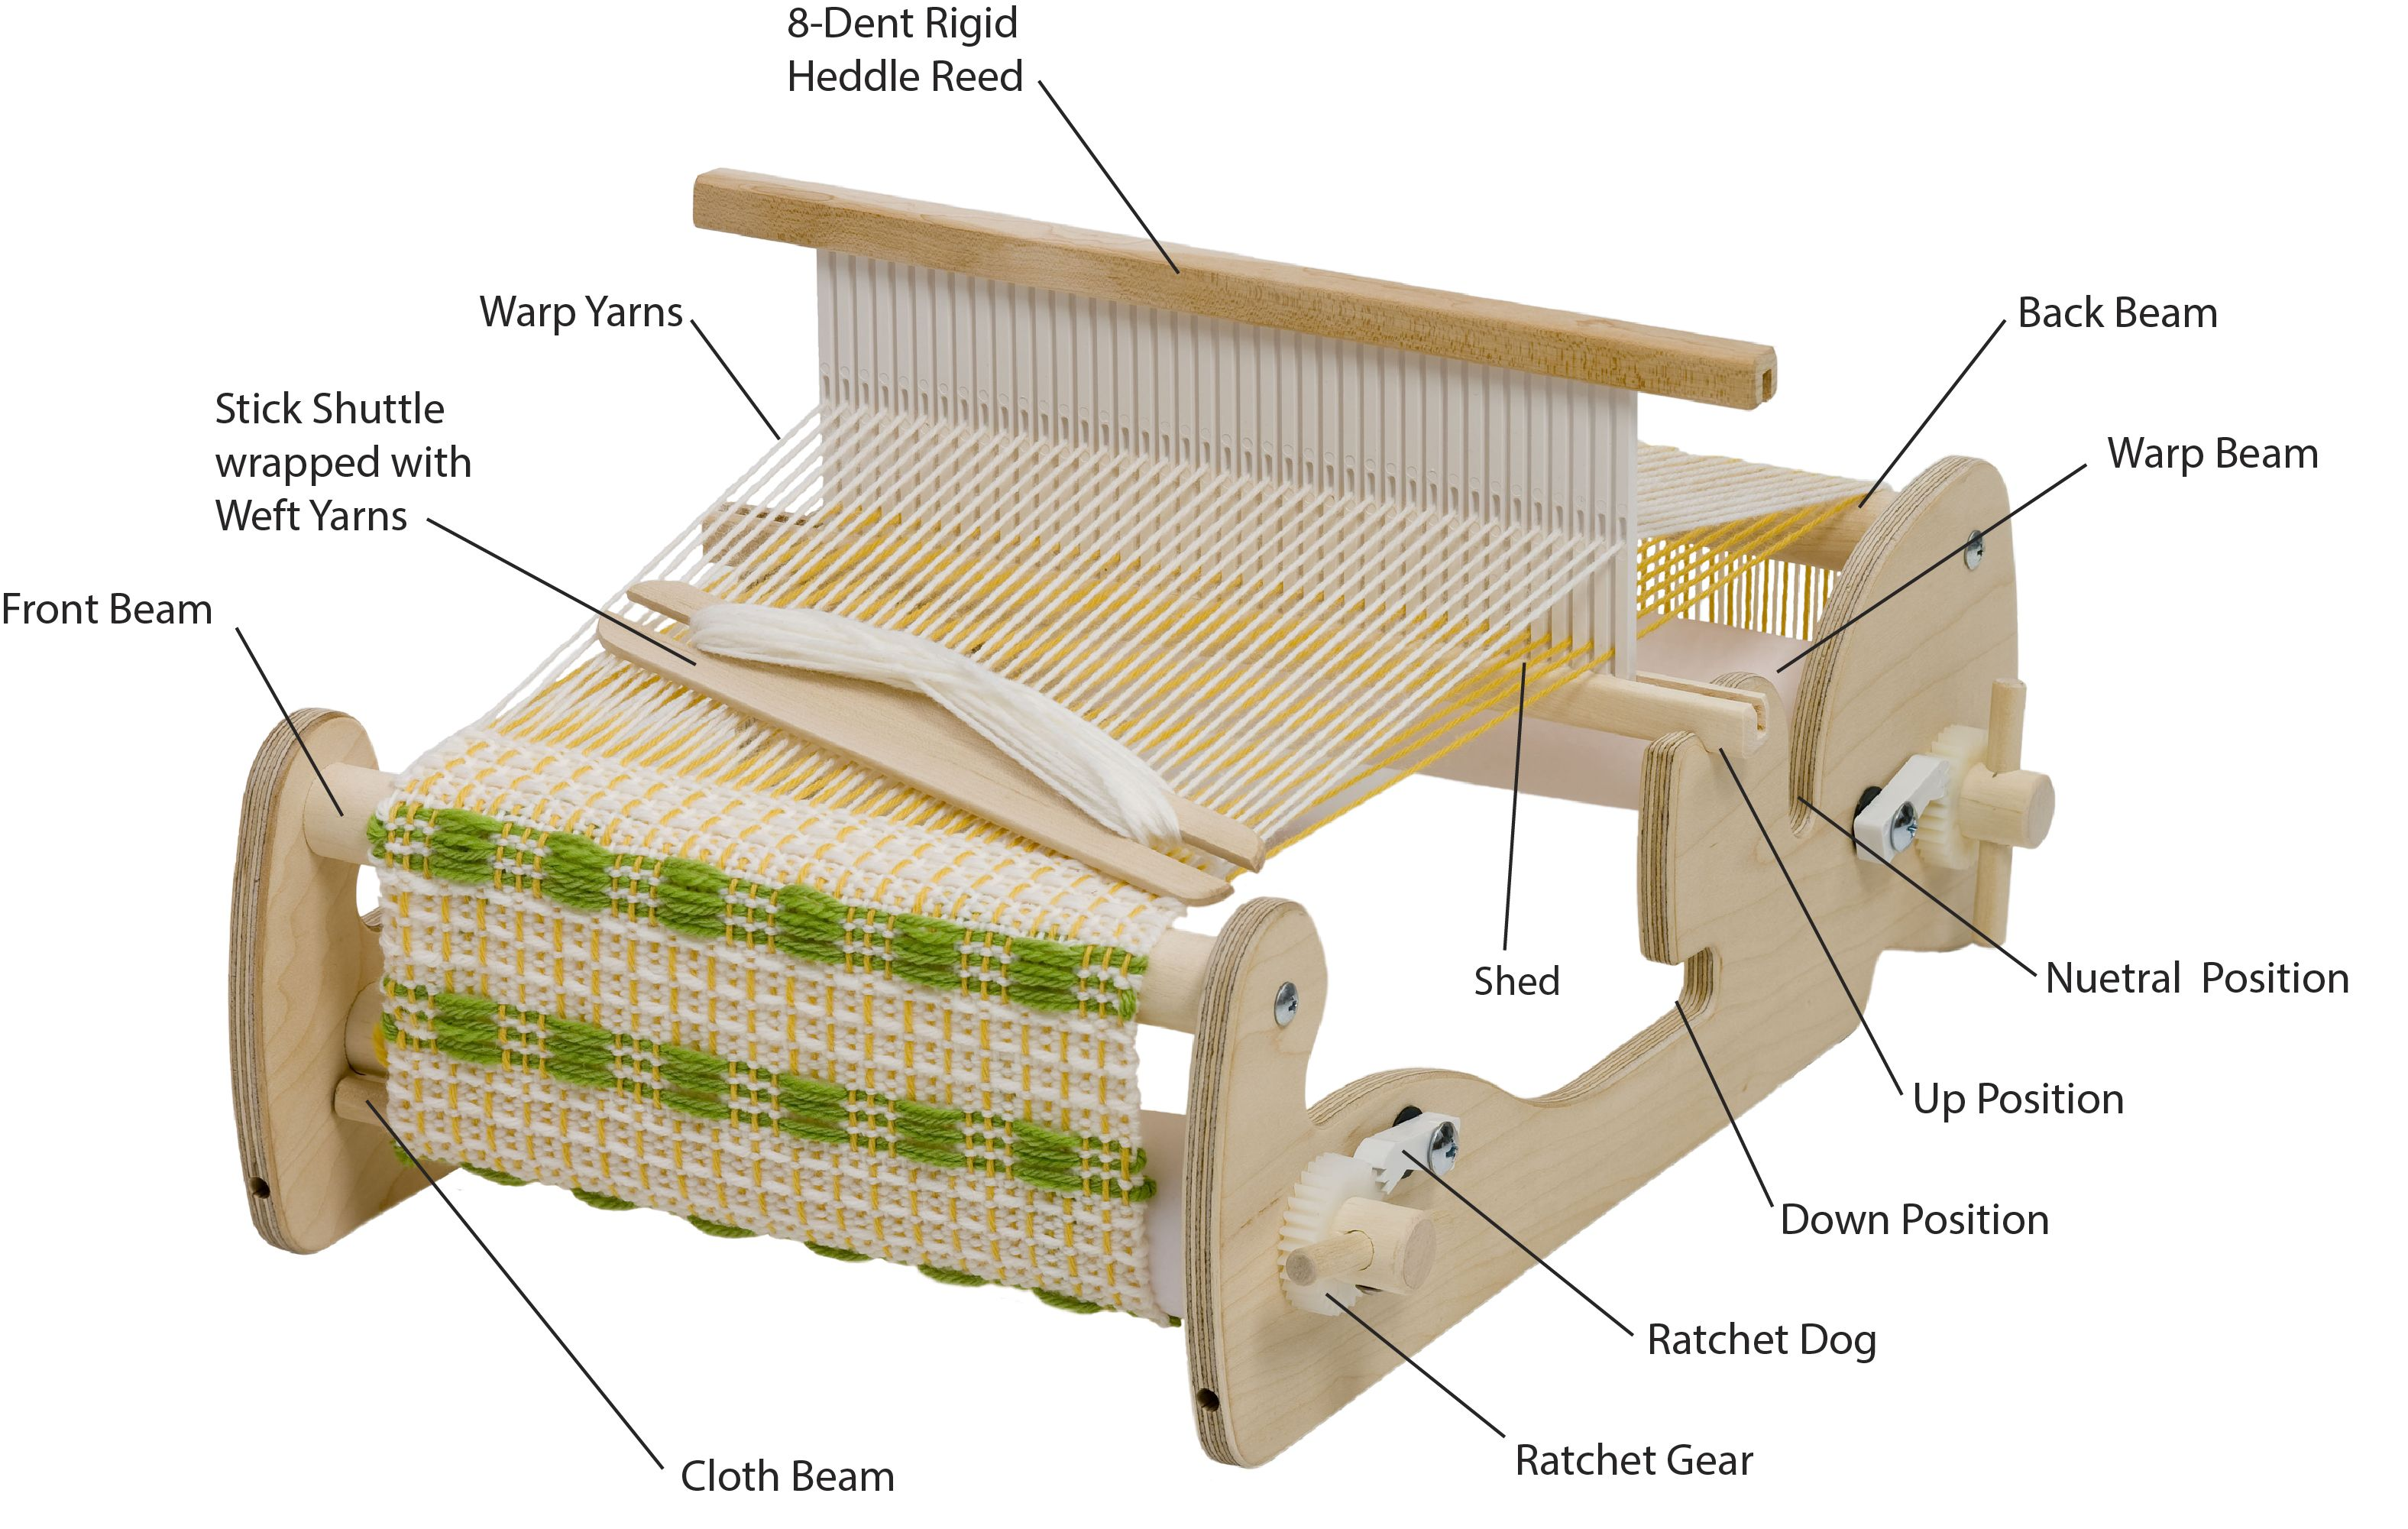 The Cricket Loom | Weaving | Pinterest | Weaving, Loom and Cricket loom